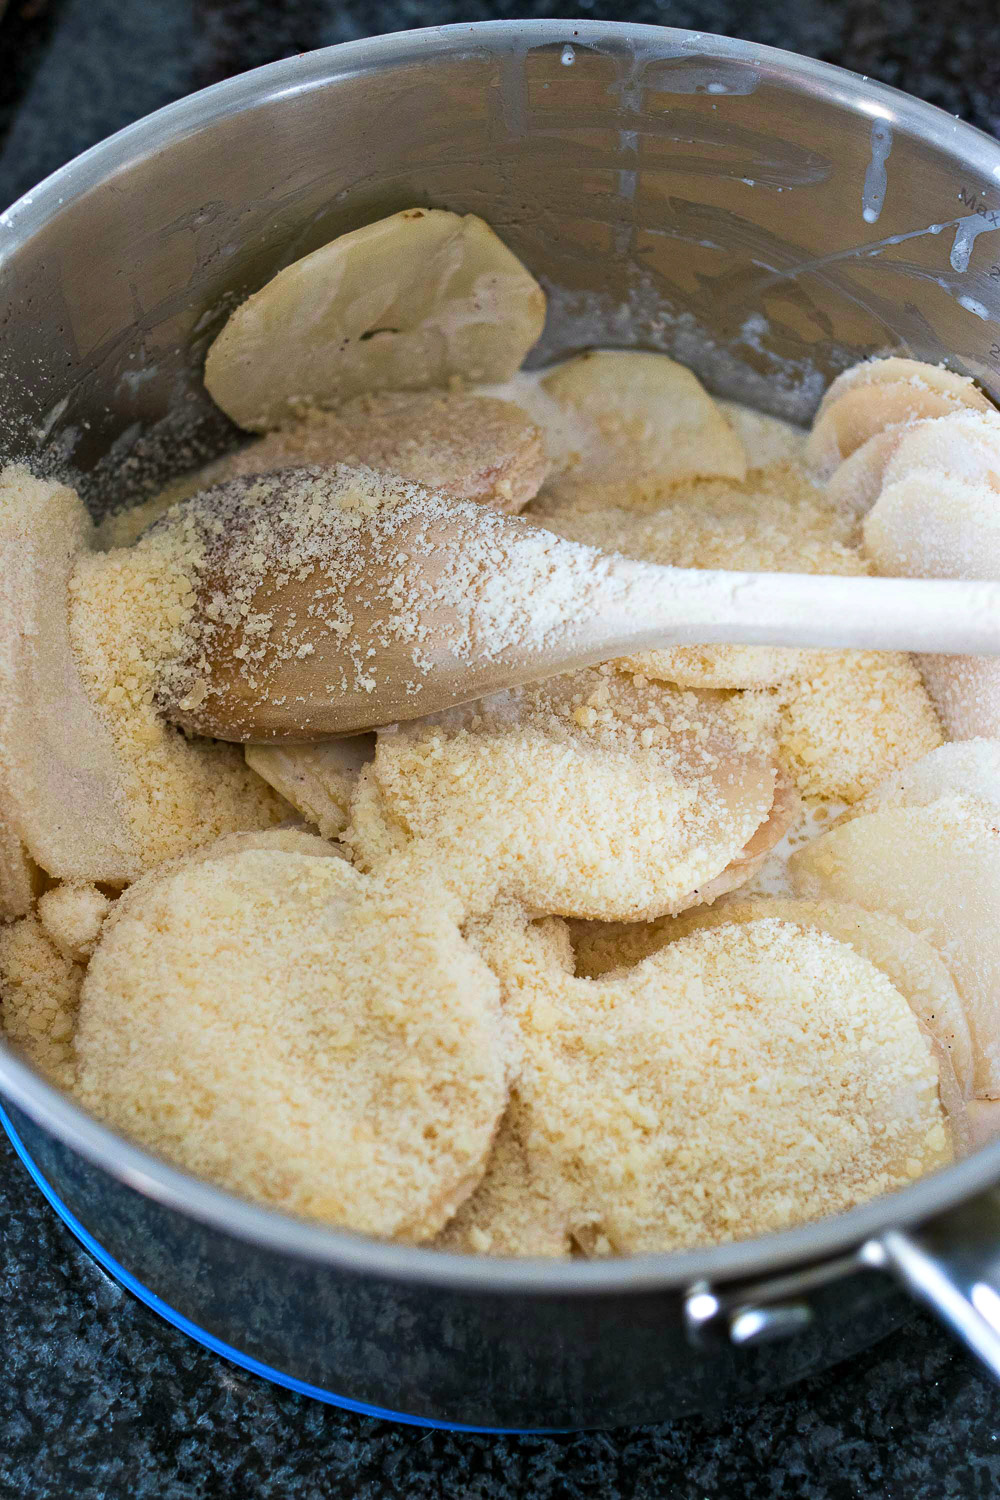 Mixing the potato slices with the dry ingredients